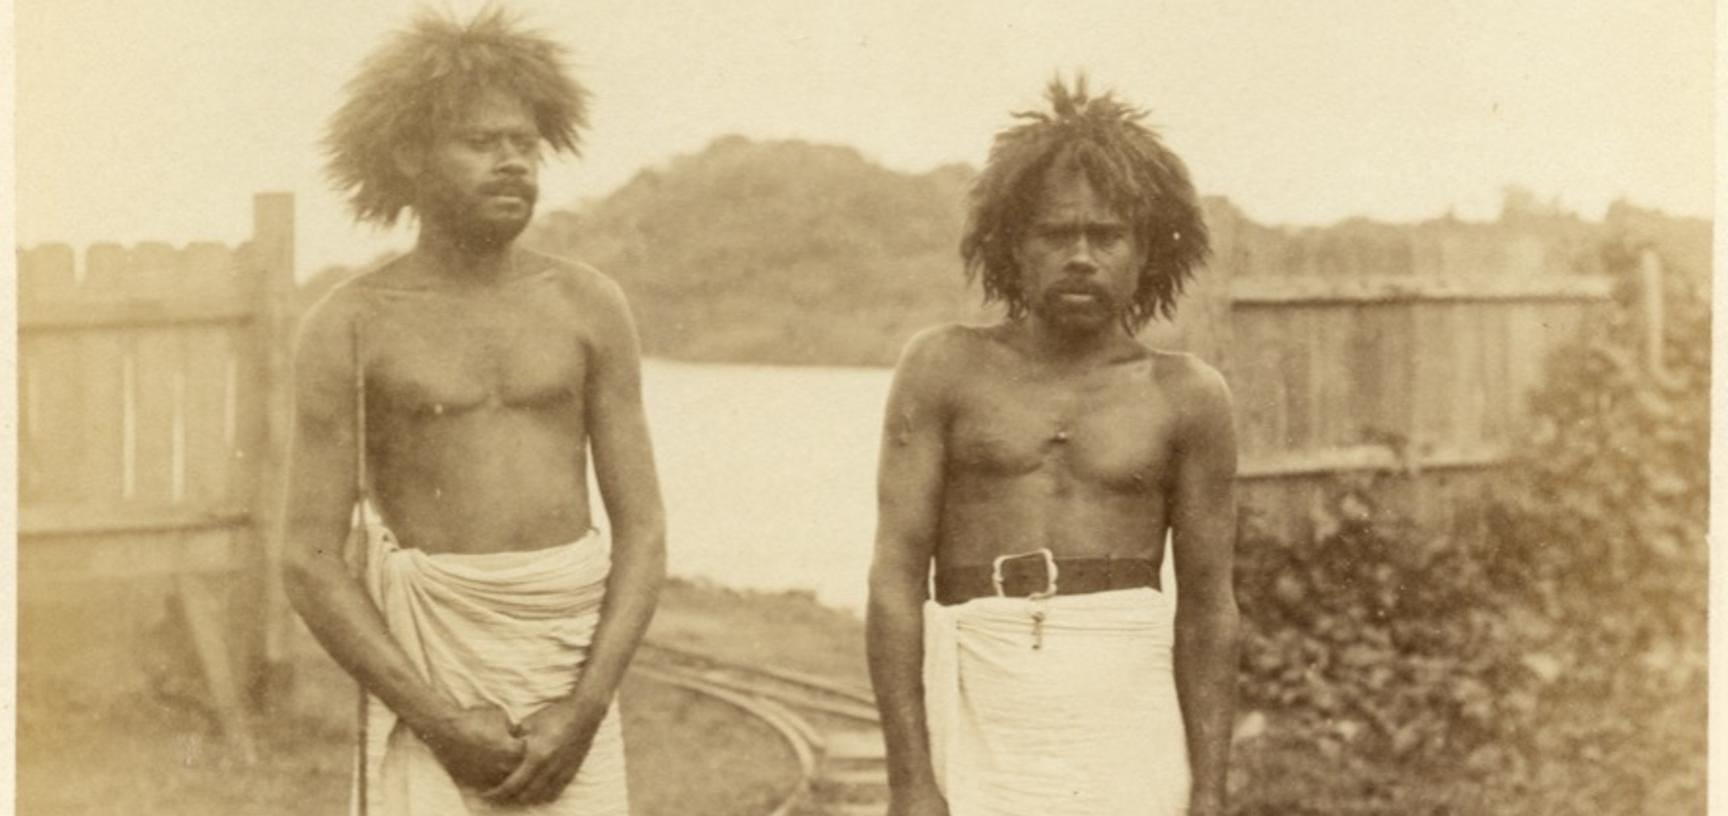 Portrait of two Fijian men, labourers, pictured beside the Rewa River. Photograph by Alfred Burton for the Burton Brothers studio (Dunedin). Viti Levu, Fiji. June 1884. (Copyright Pitt Rivers Museum, University of Oxford. Accession Number: 1998.238.4)